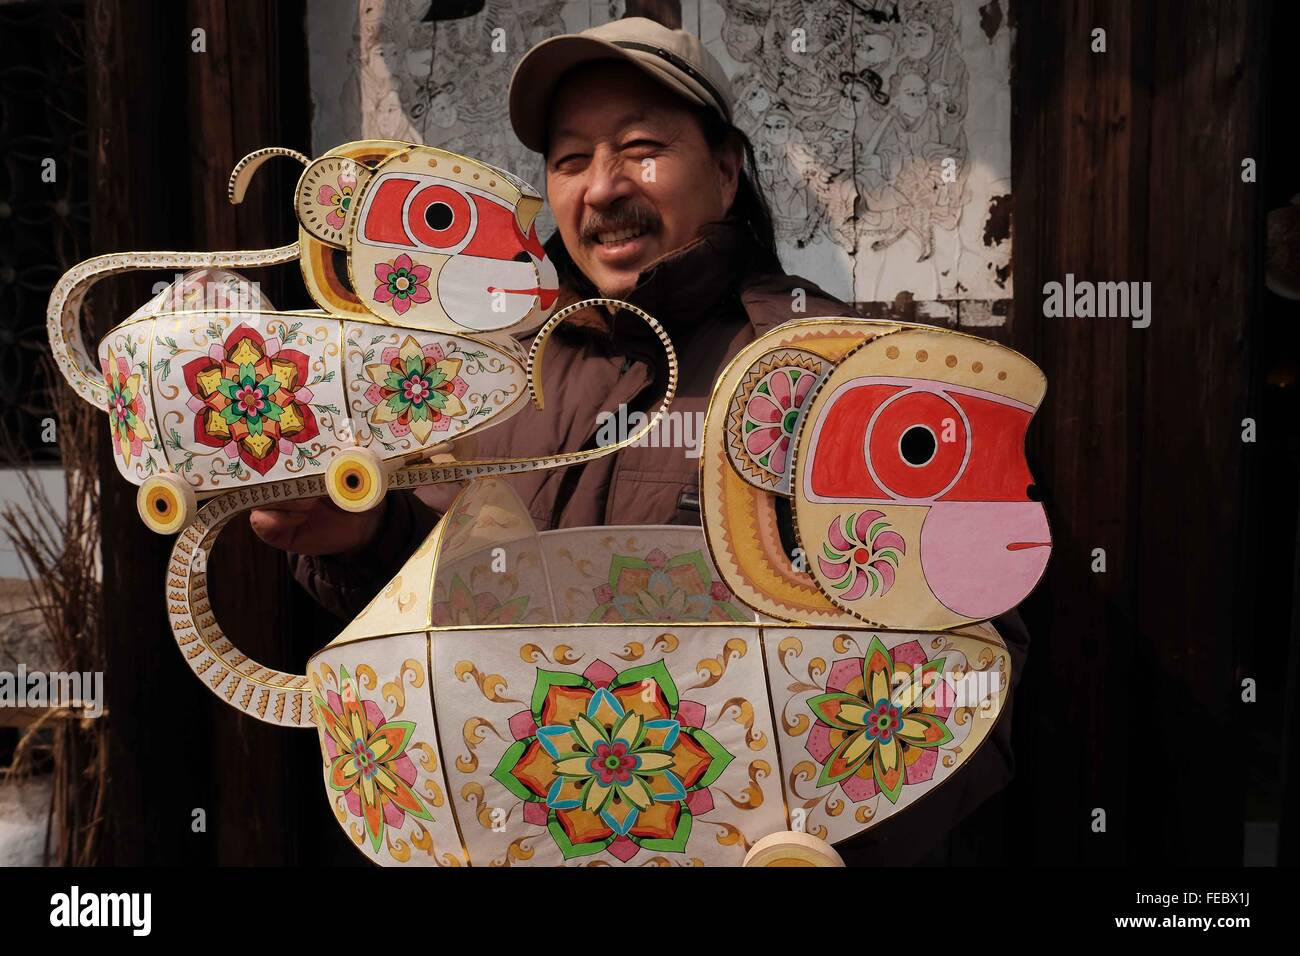 (160205) -- NANTONG, Feb. 5, 2016 (Xinhua) -- Folk artist He Linxiang demonstrates monkey-shaped lanterns he designed - Stock Image